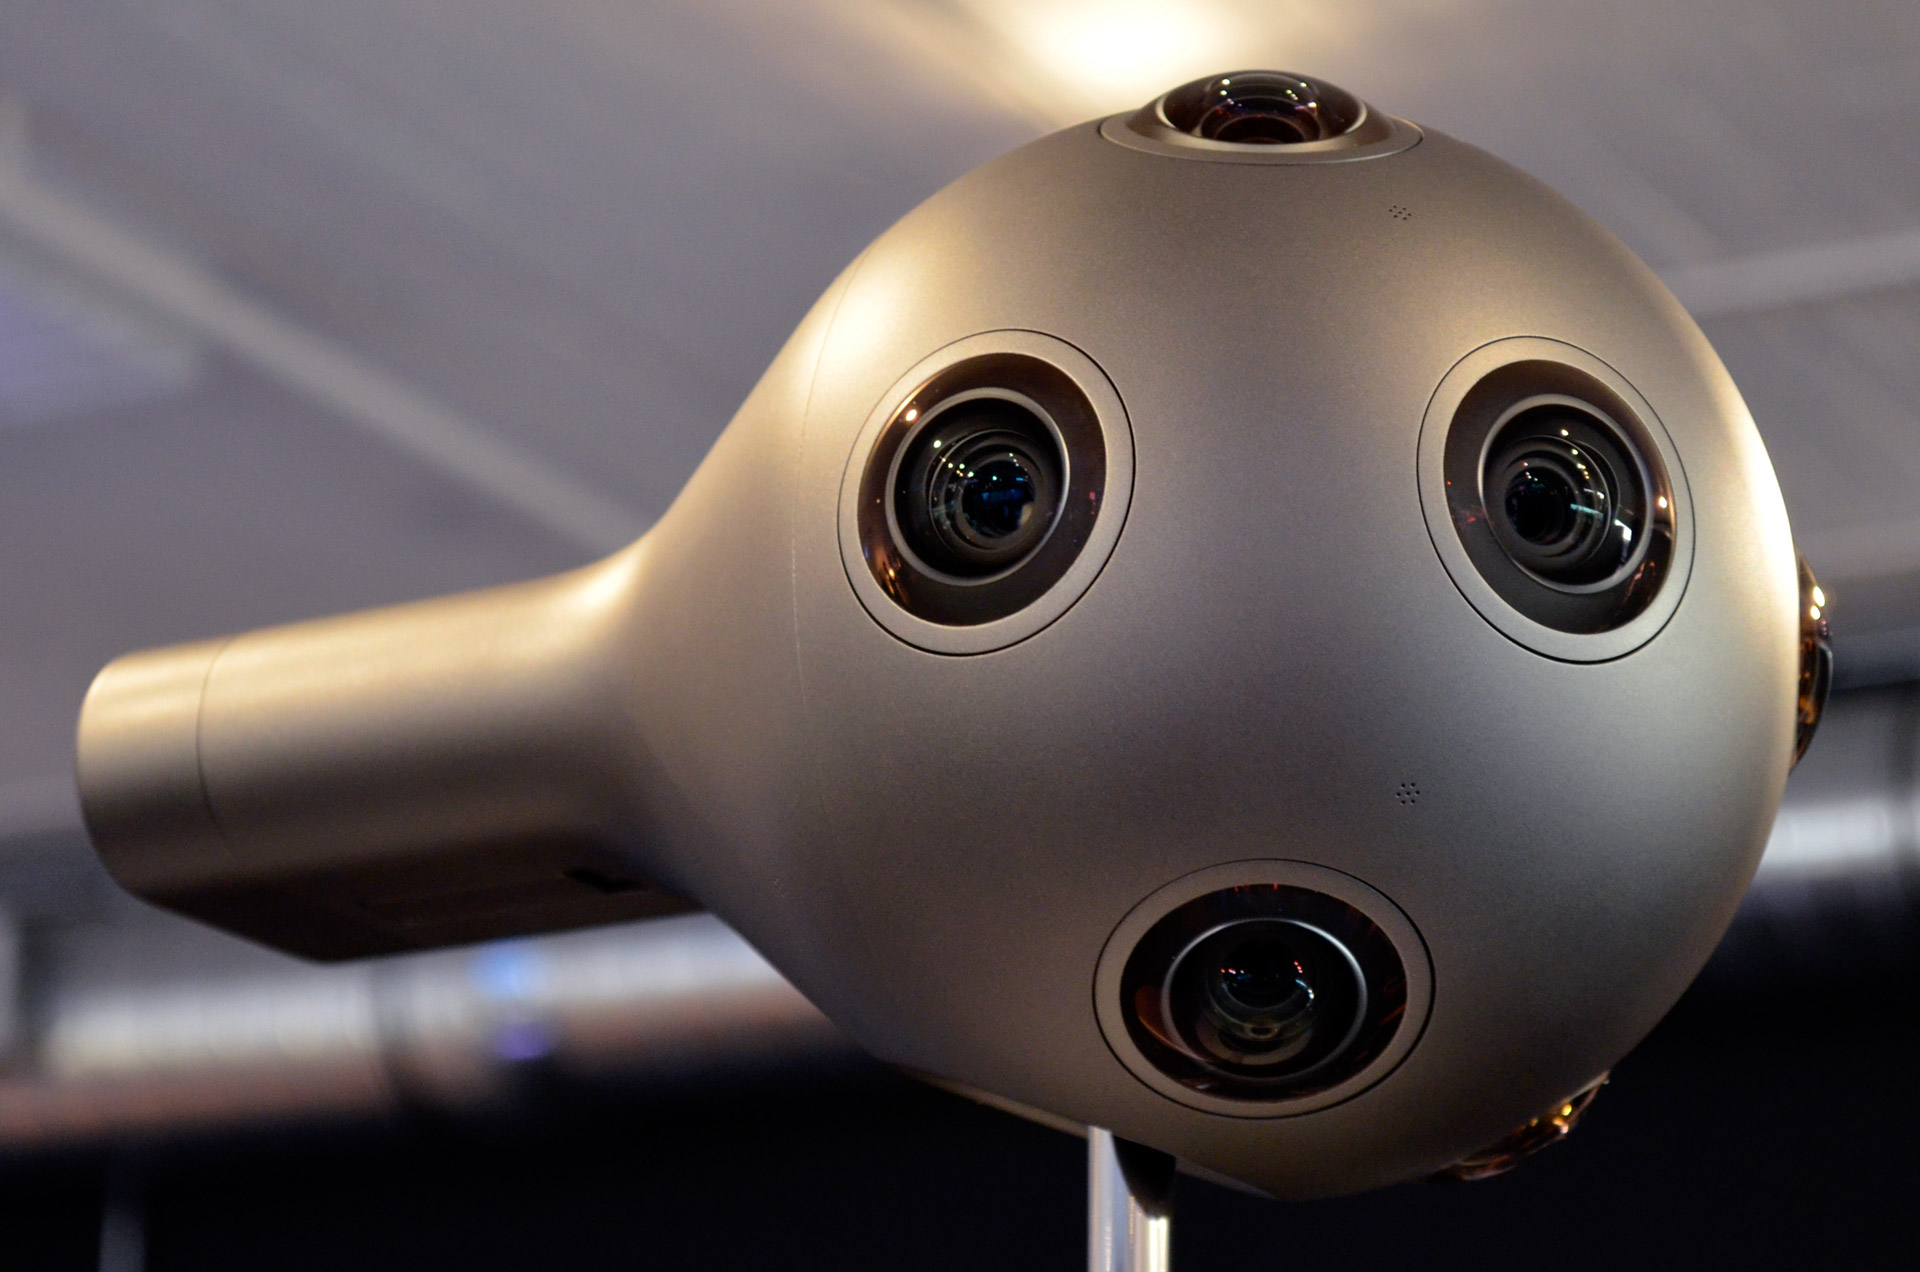 Nokia Launches OZO Player SDK to Build Cross-platform VR Video Apps